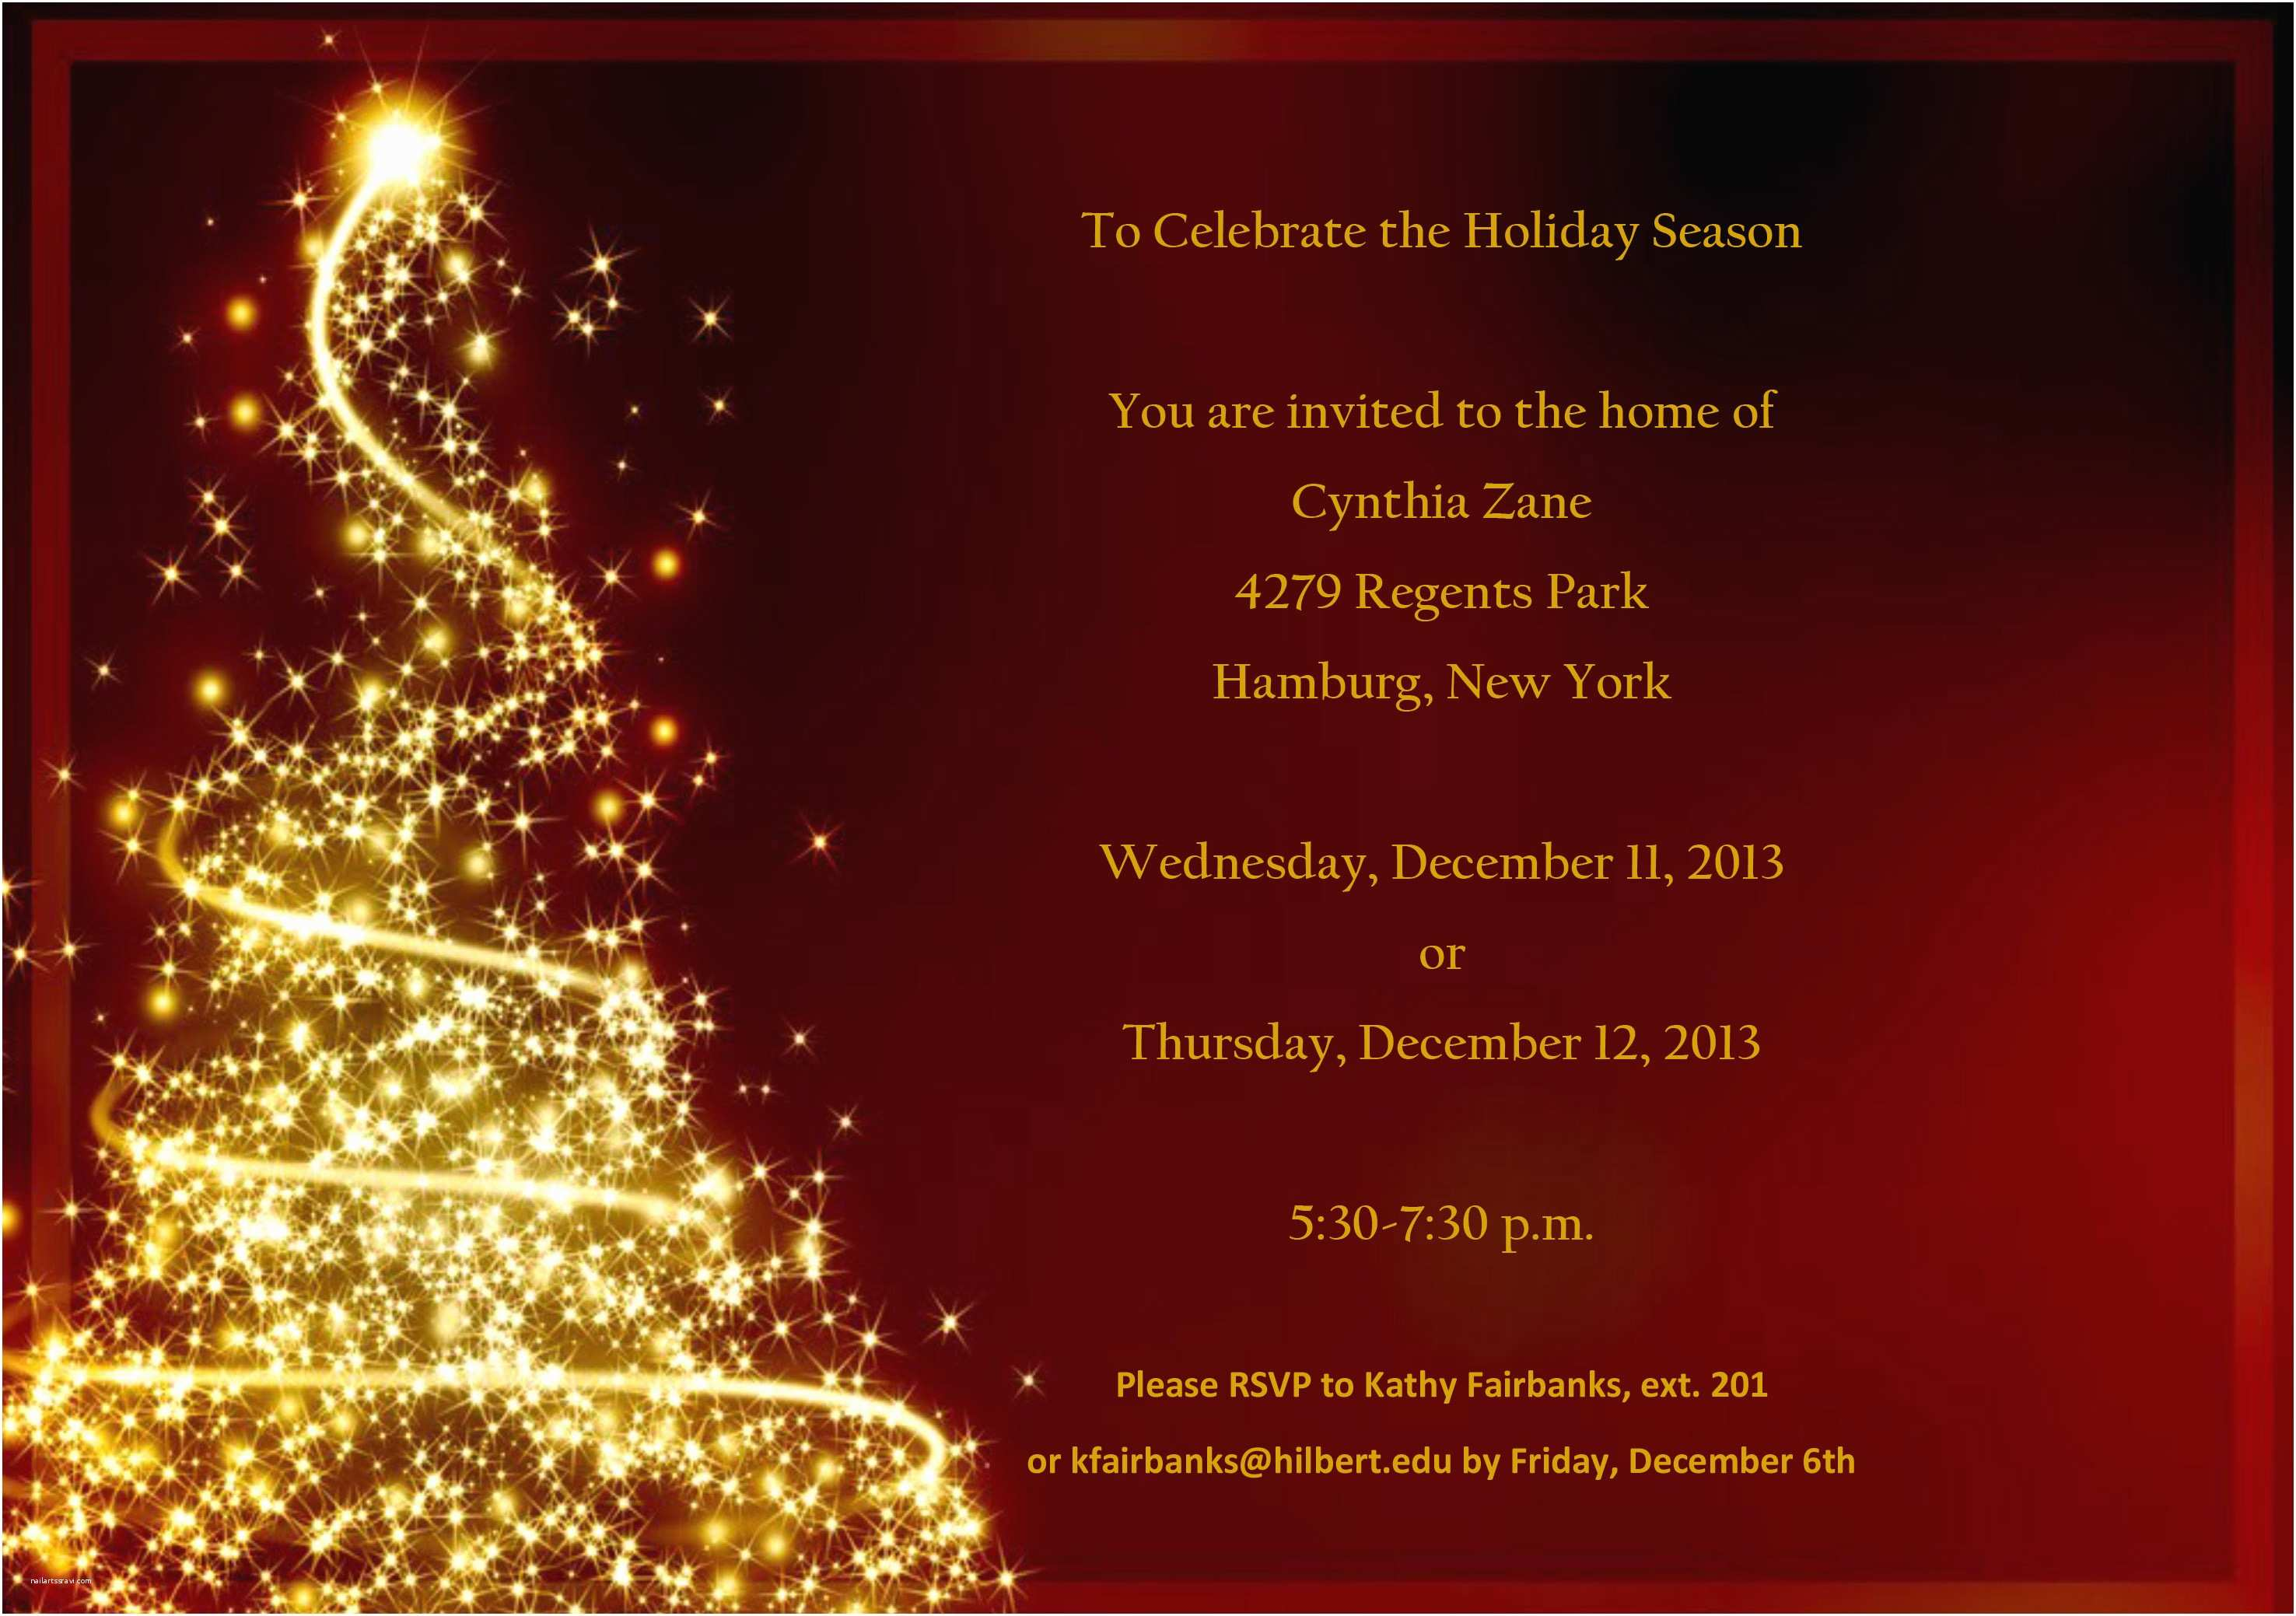 Holiday Party Invitation Template Free Christmas Party Invitation Templates Free Download